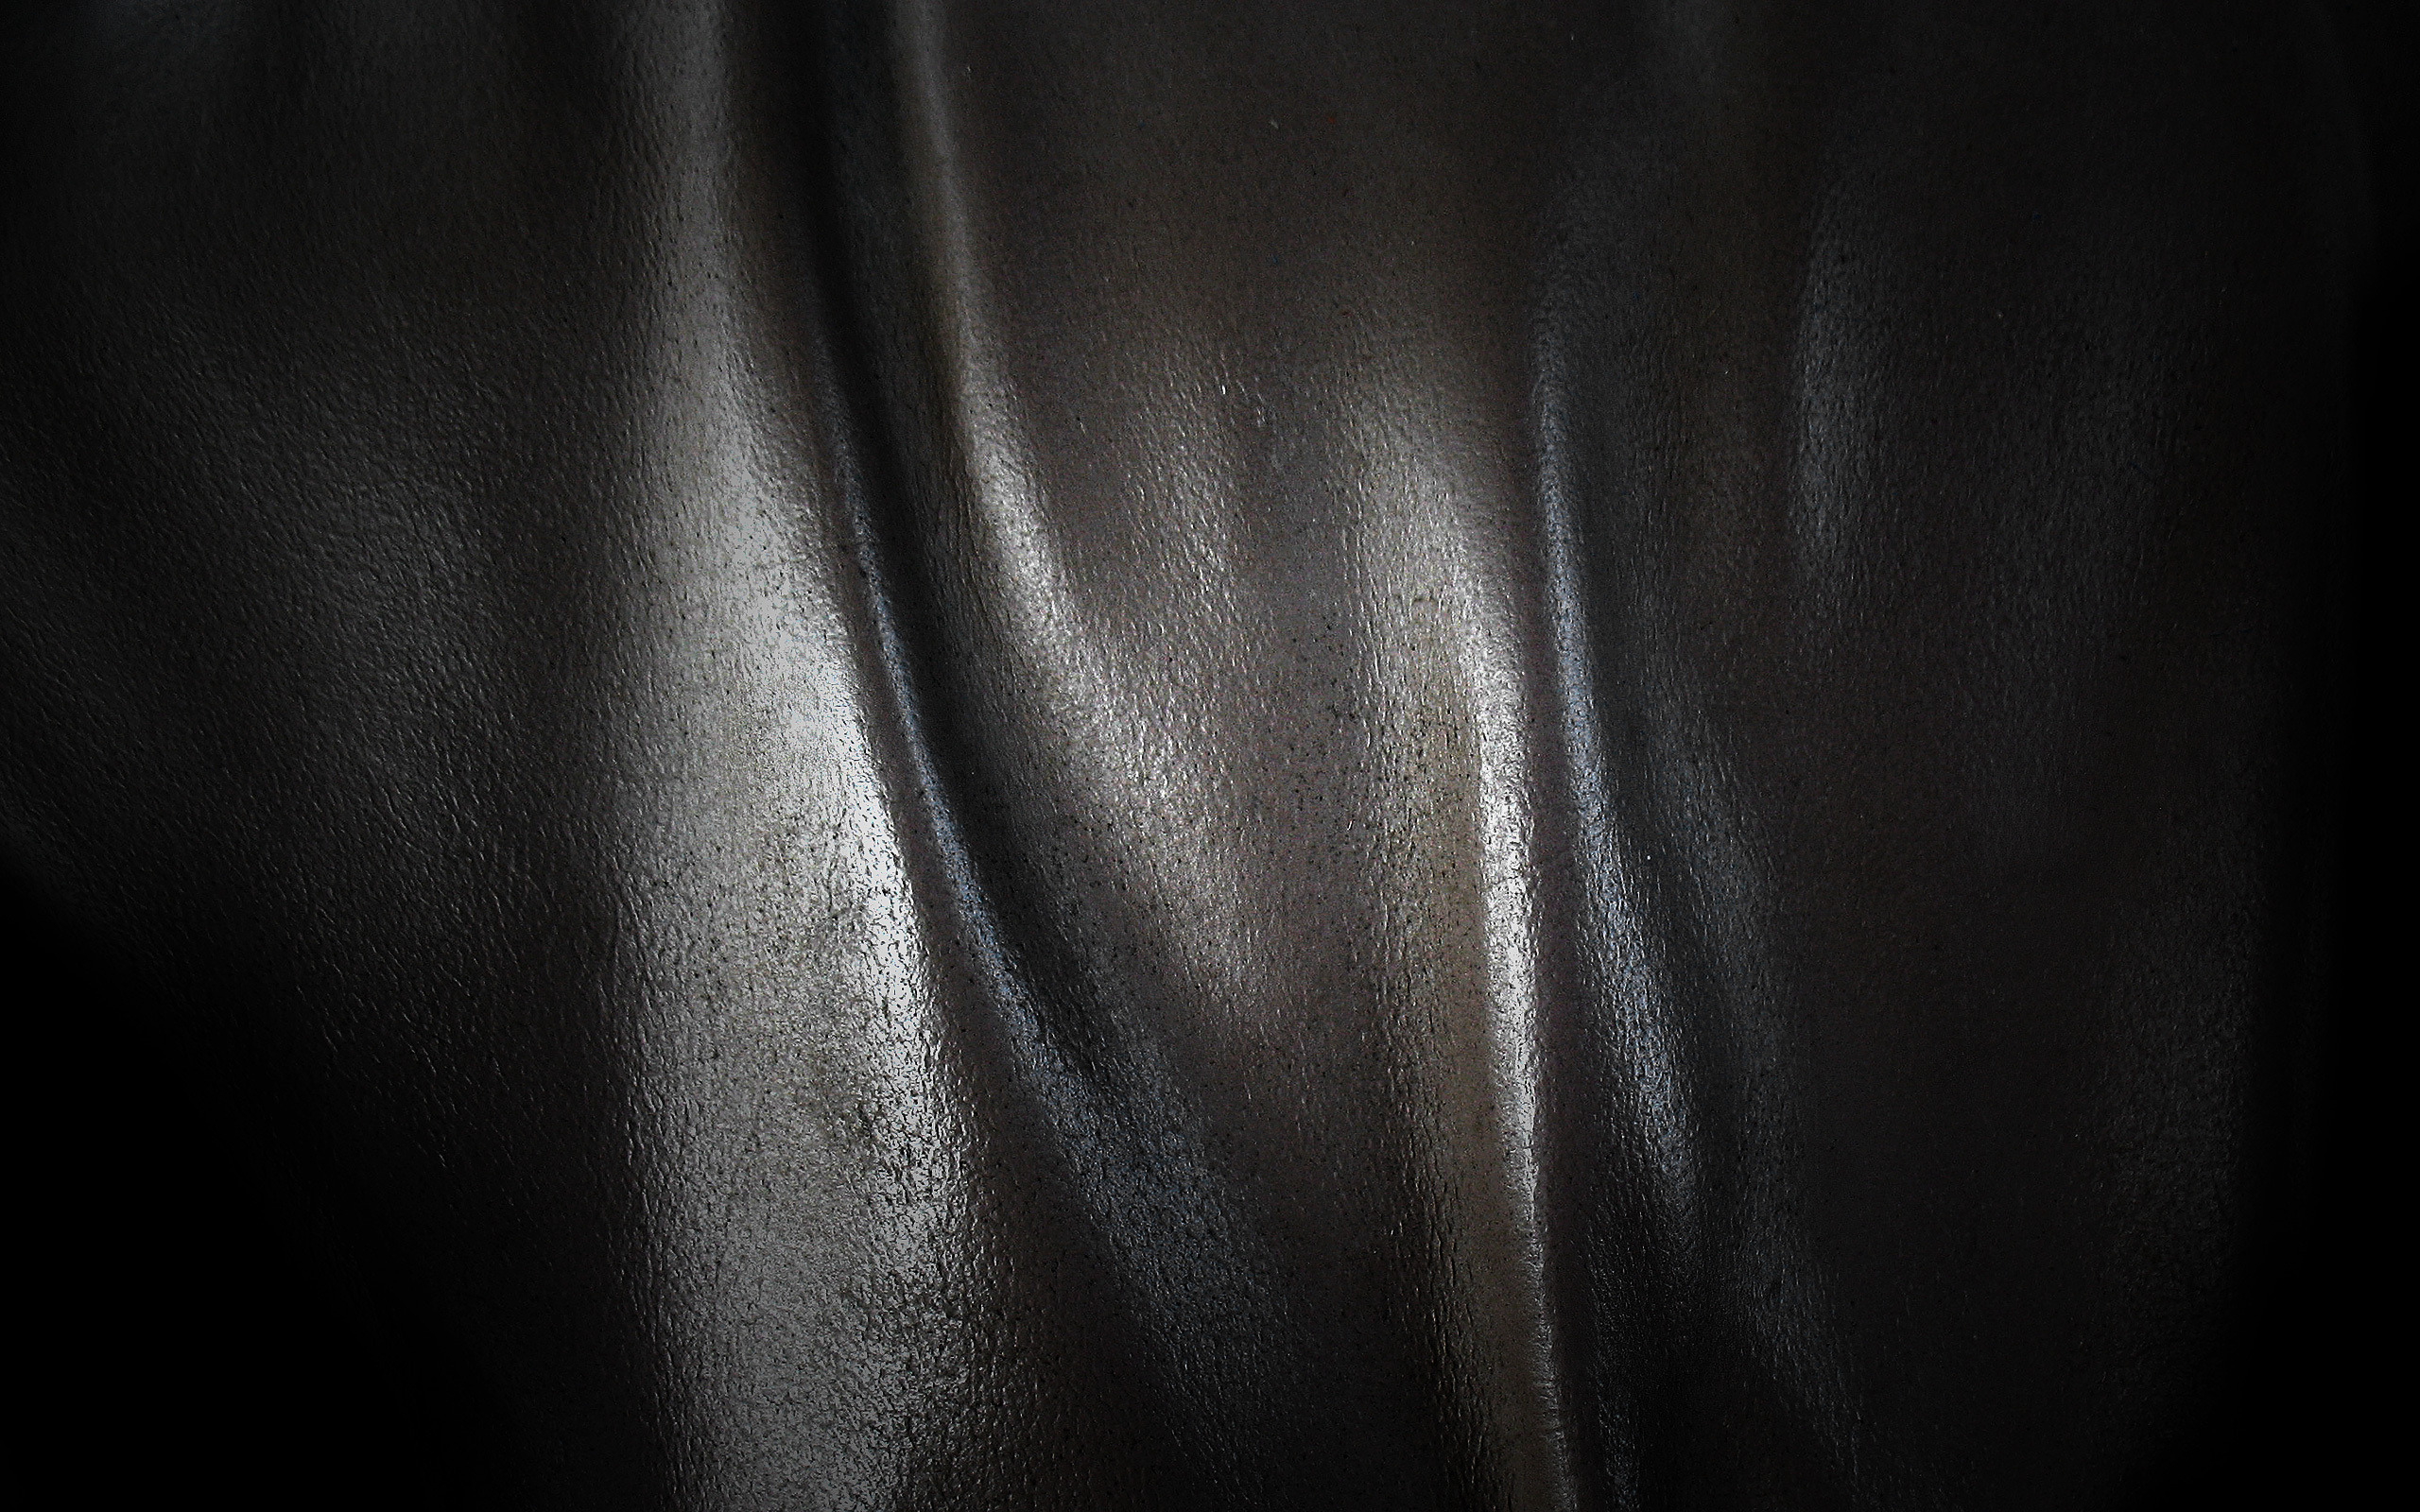 Shiny Black Wallpaper Wallpapersafari